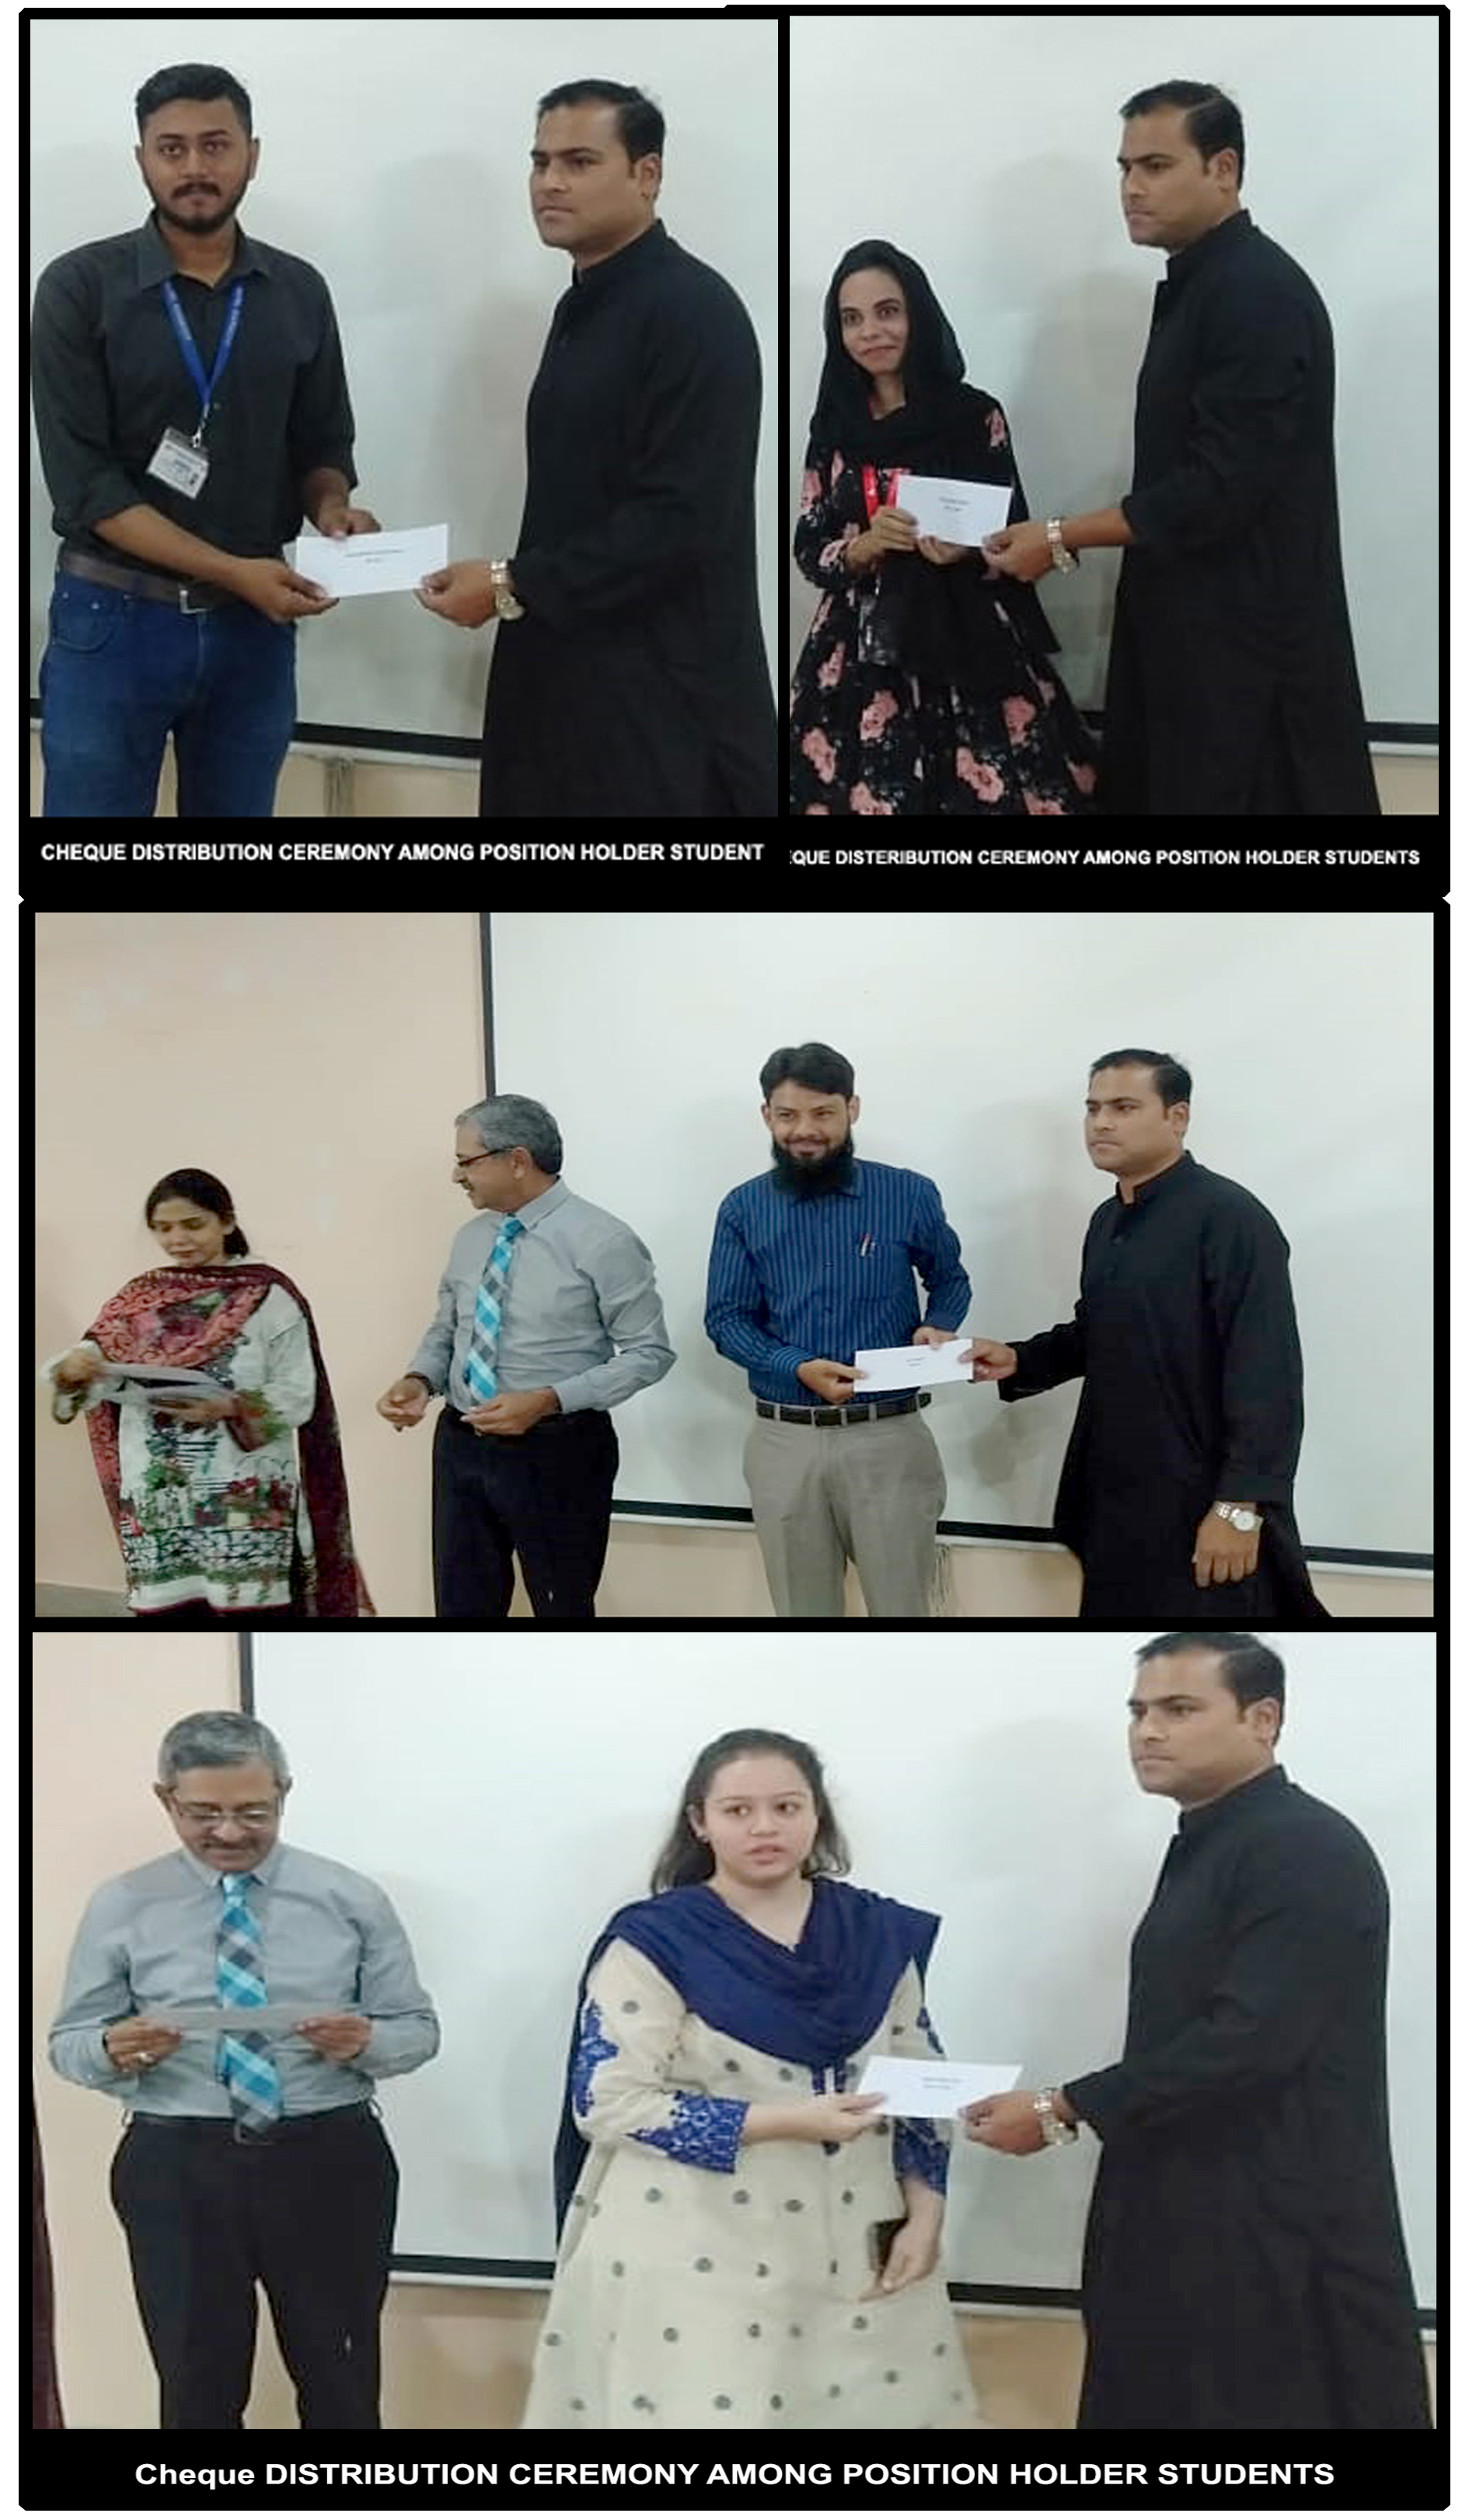 Cheque Distribution Ceremony Among Position Holder Students